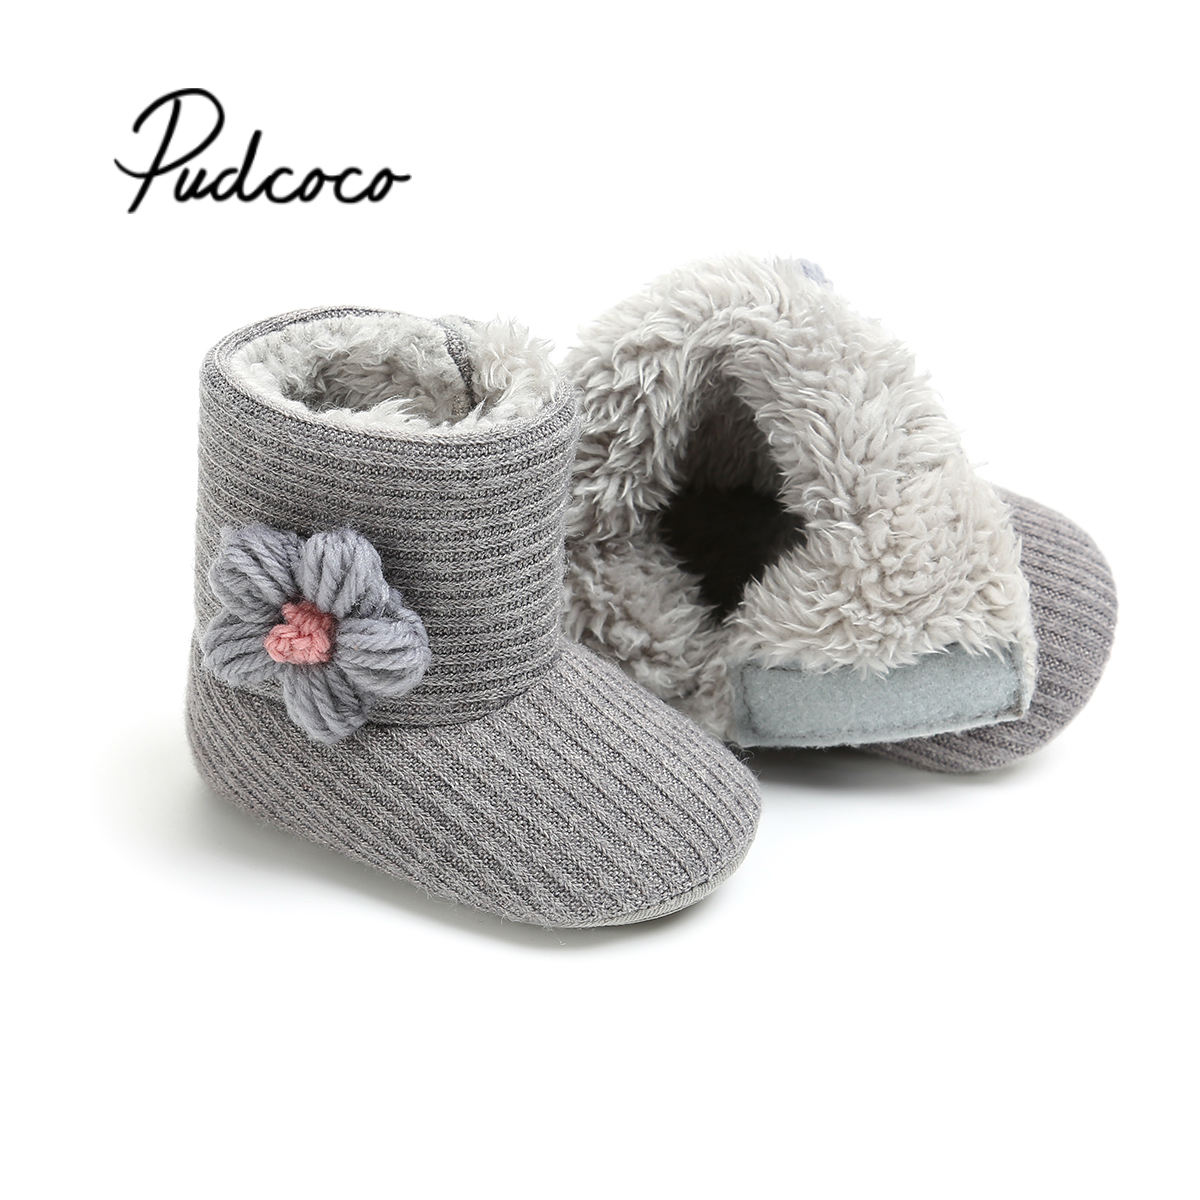 Unisex Baby Newborn Bootie Winter Keep Warm Infant Toddler Crib Shoes Soft Classic Floor Boys Girls First Walkers For New Years